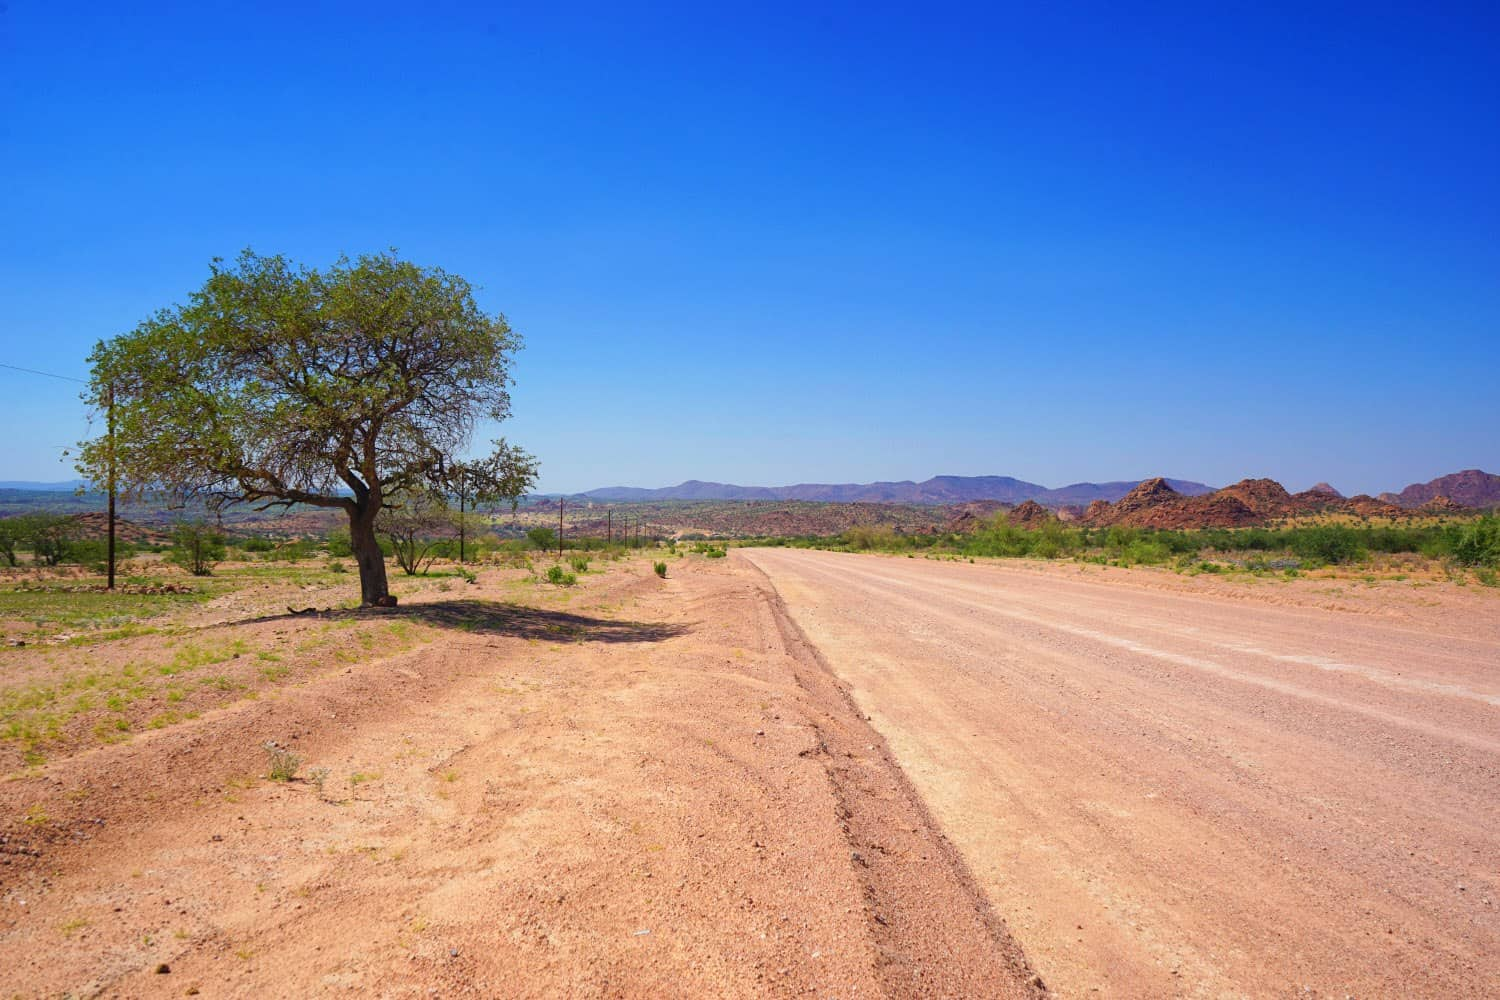 Road in Damaraland, Namibia